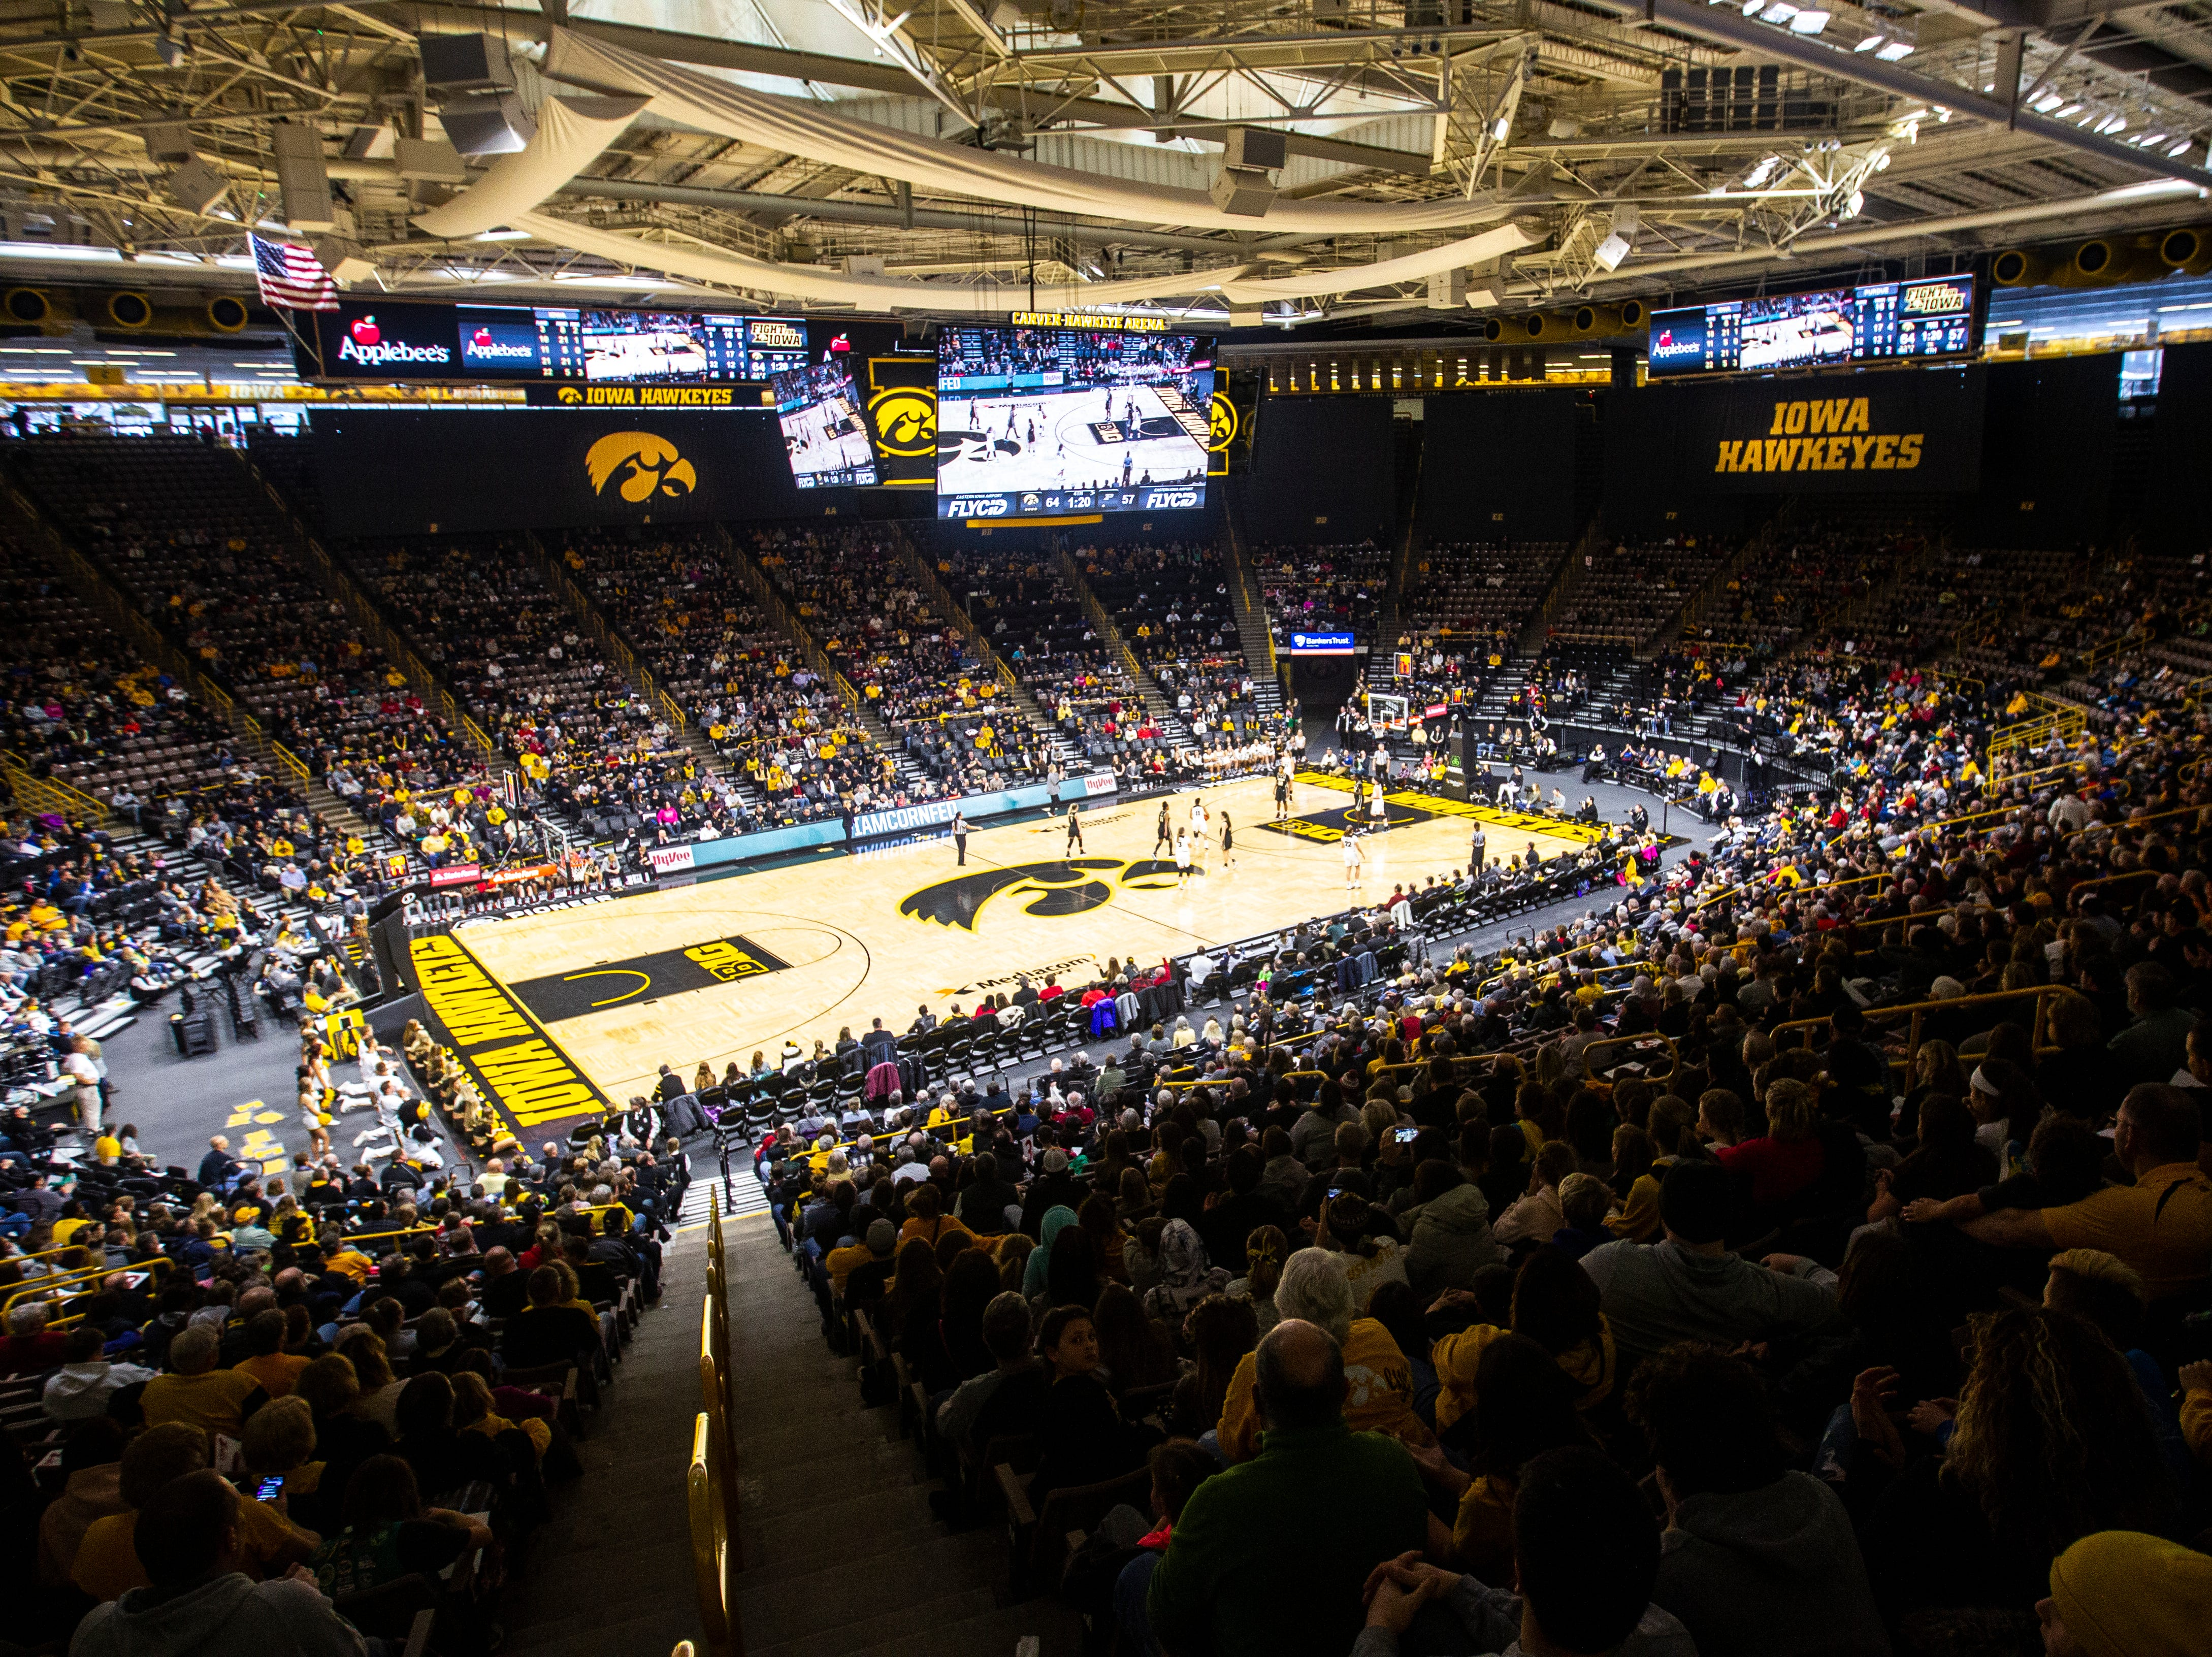 Iowa Hawkeyes fans watch the final minute of play during a NCAA Big Ten Conference women's basketball game on Sunday, Jan. 27, 2019, at Carver-Hawkeye Arena in Iowa City, Iowa.